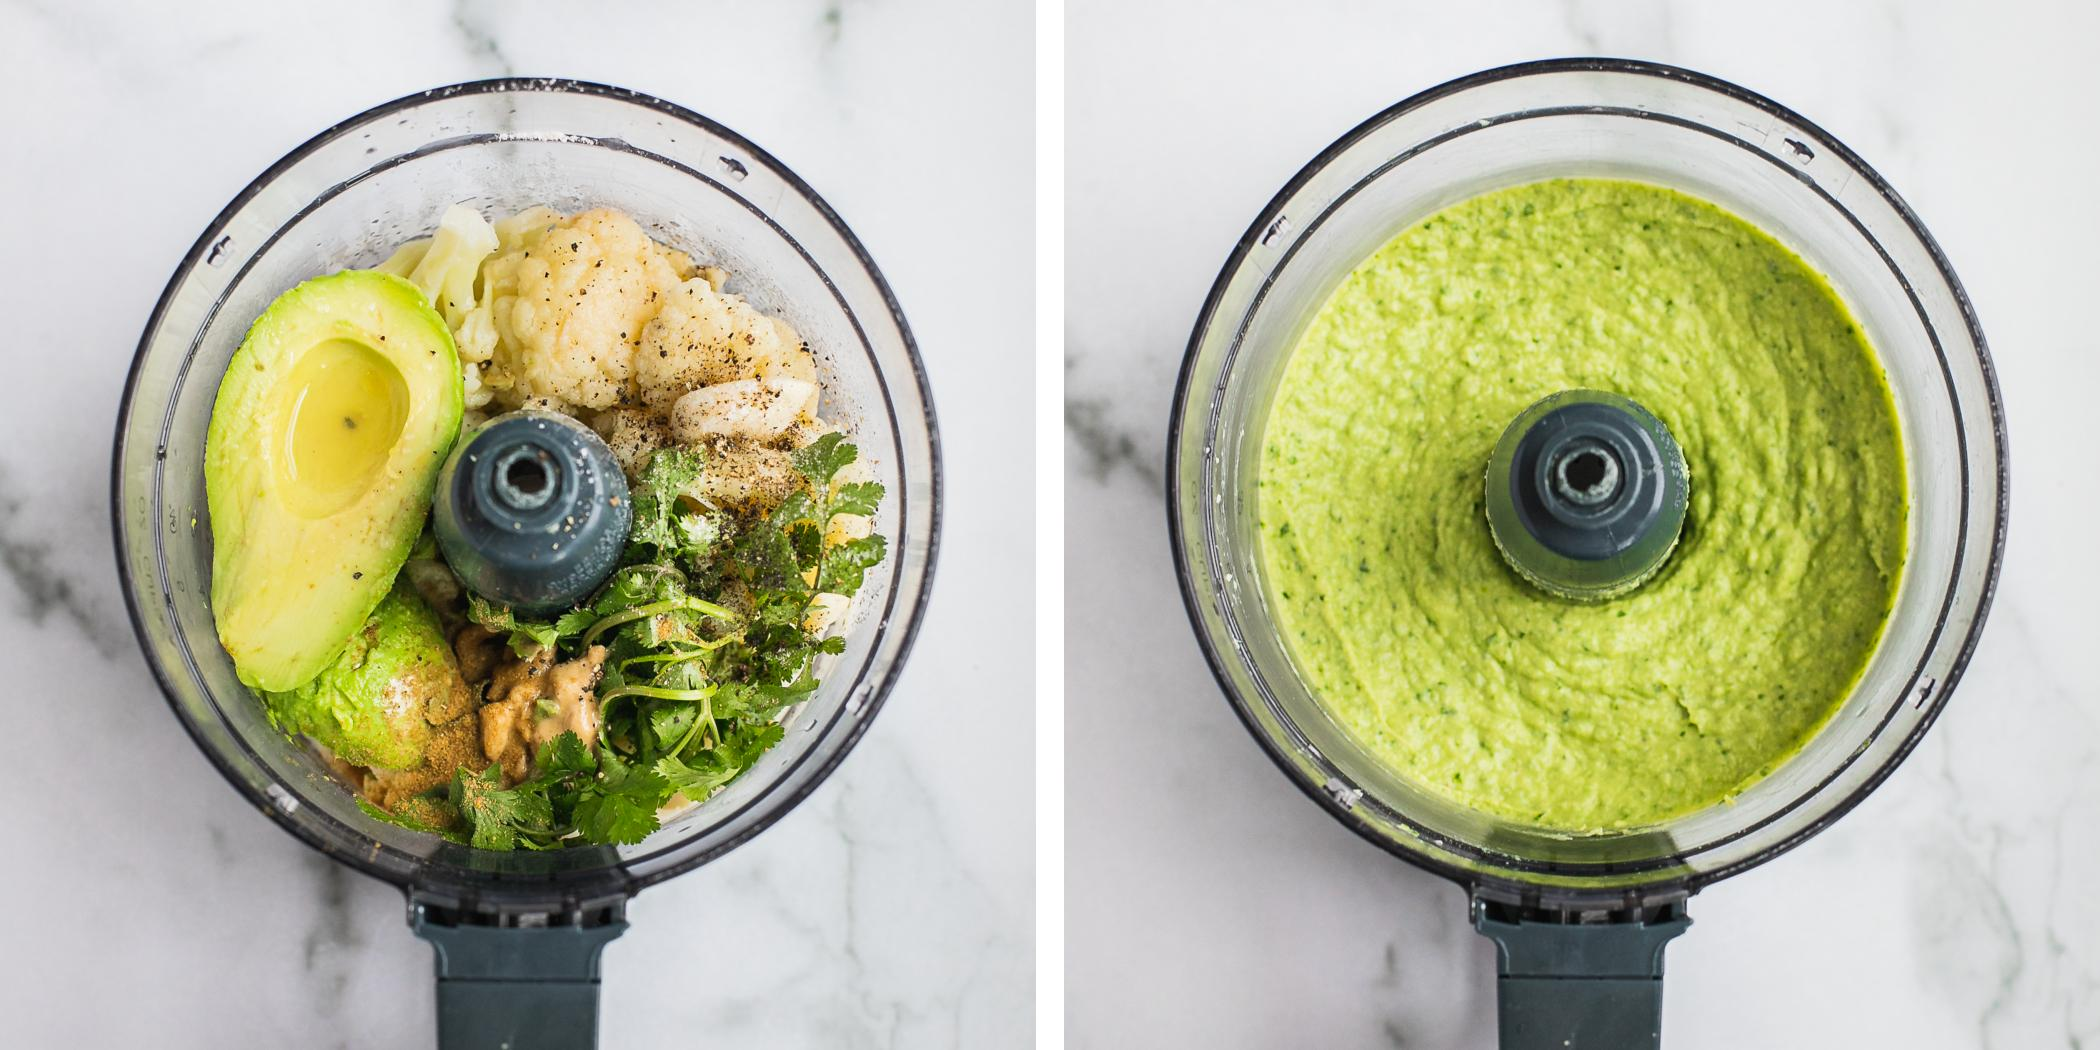 Instruction on how to make whole30 friendly chickpea free avocado hummus. There are two blenders photos taken at different times, one before blending, one after blending.